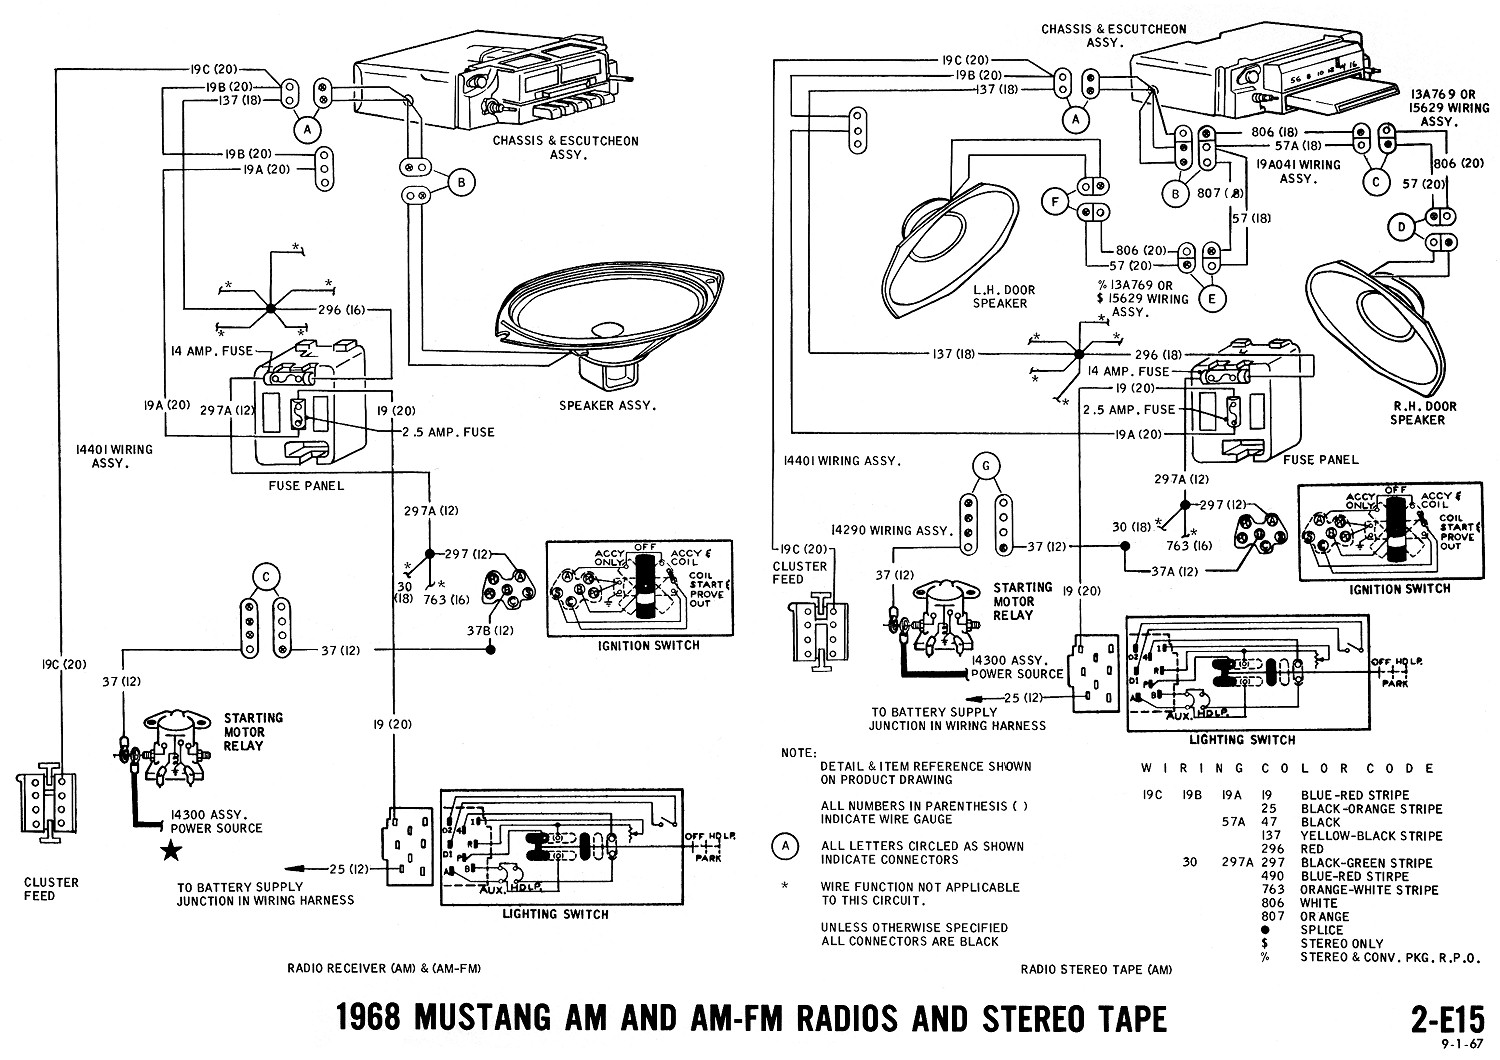 1968 mustang wiring diagrams evolving software rh peterfranza com 1992 Ford Mustang Turn Signal Wiring Diagram 2000 Mustang Fuse Box Layout